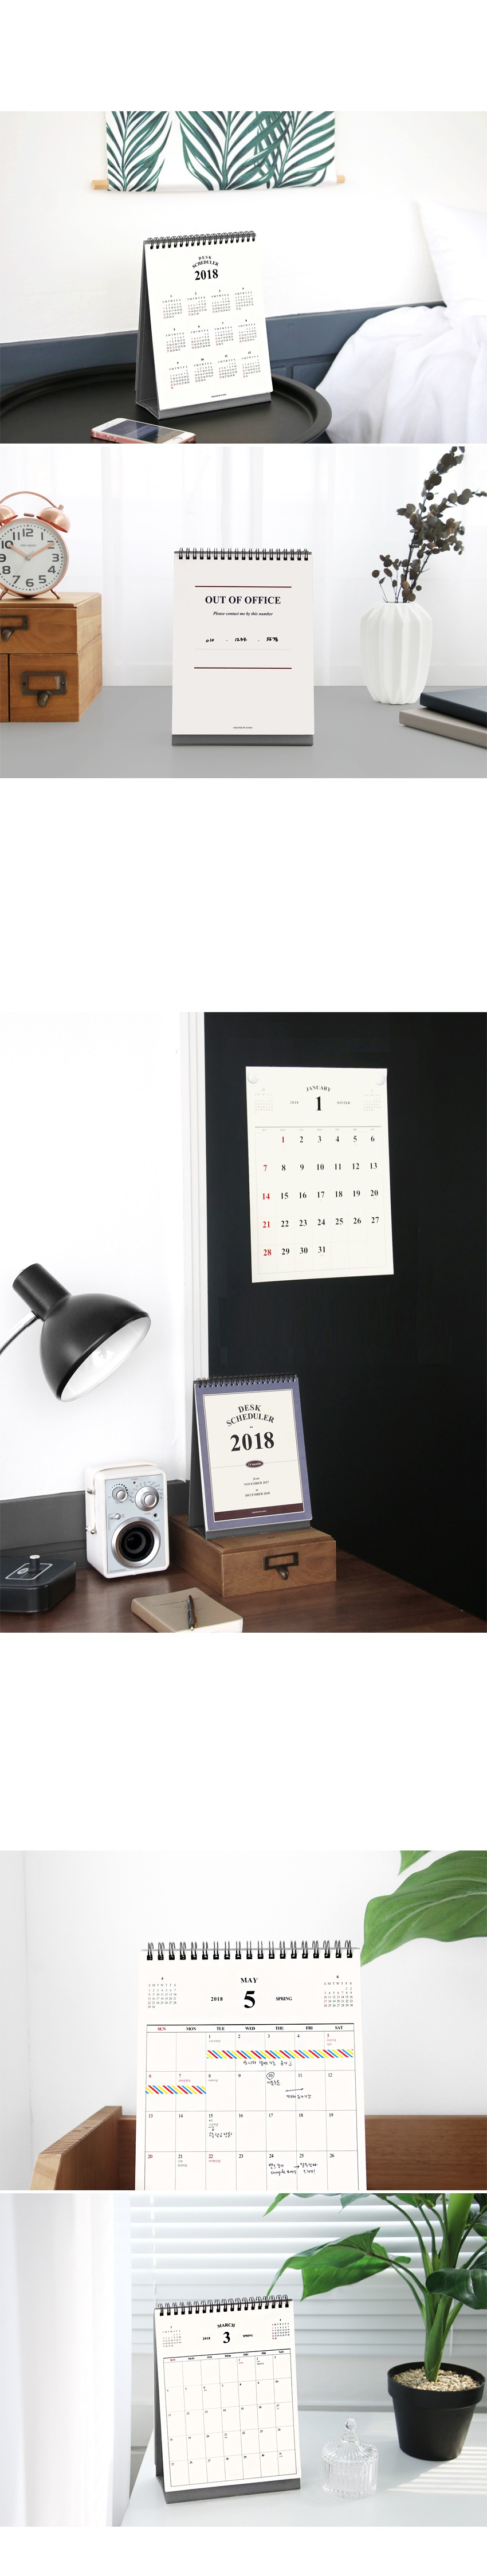 2018-desk-scheduler-4.jpg